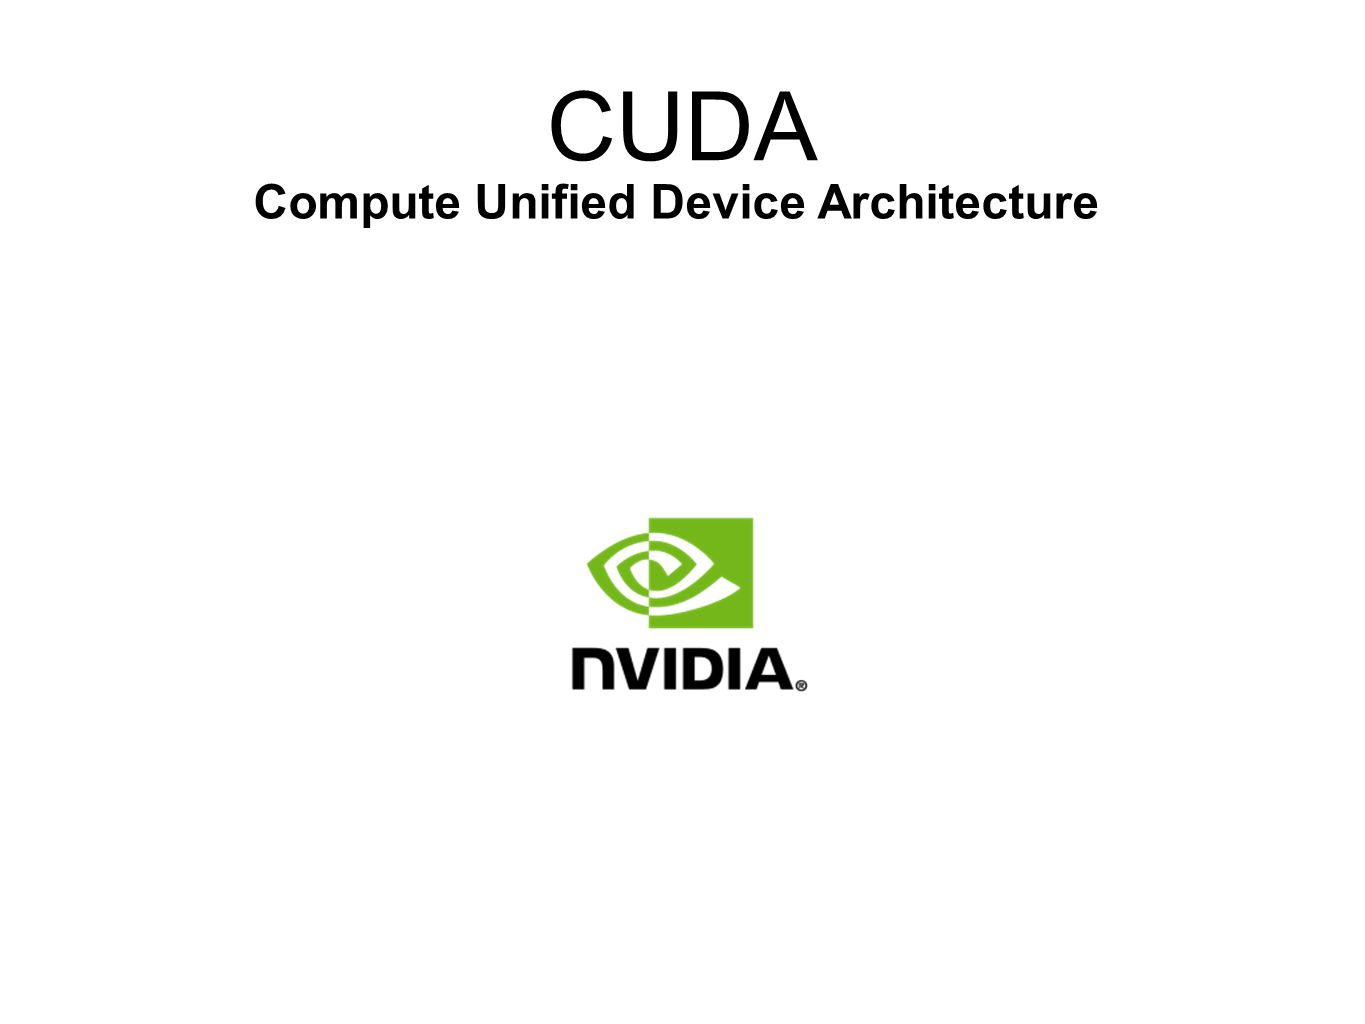 CUDA Compute Unified Device Architecture